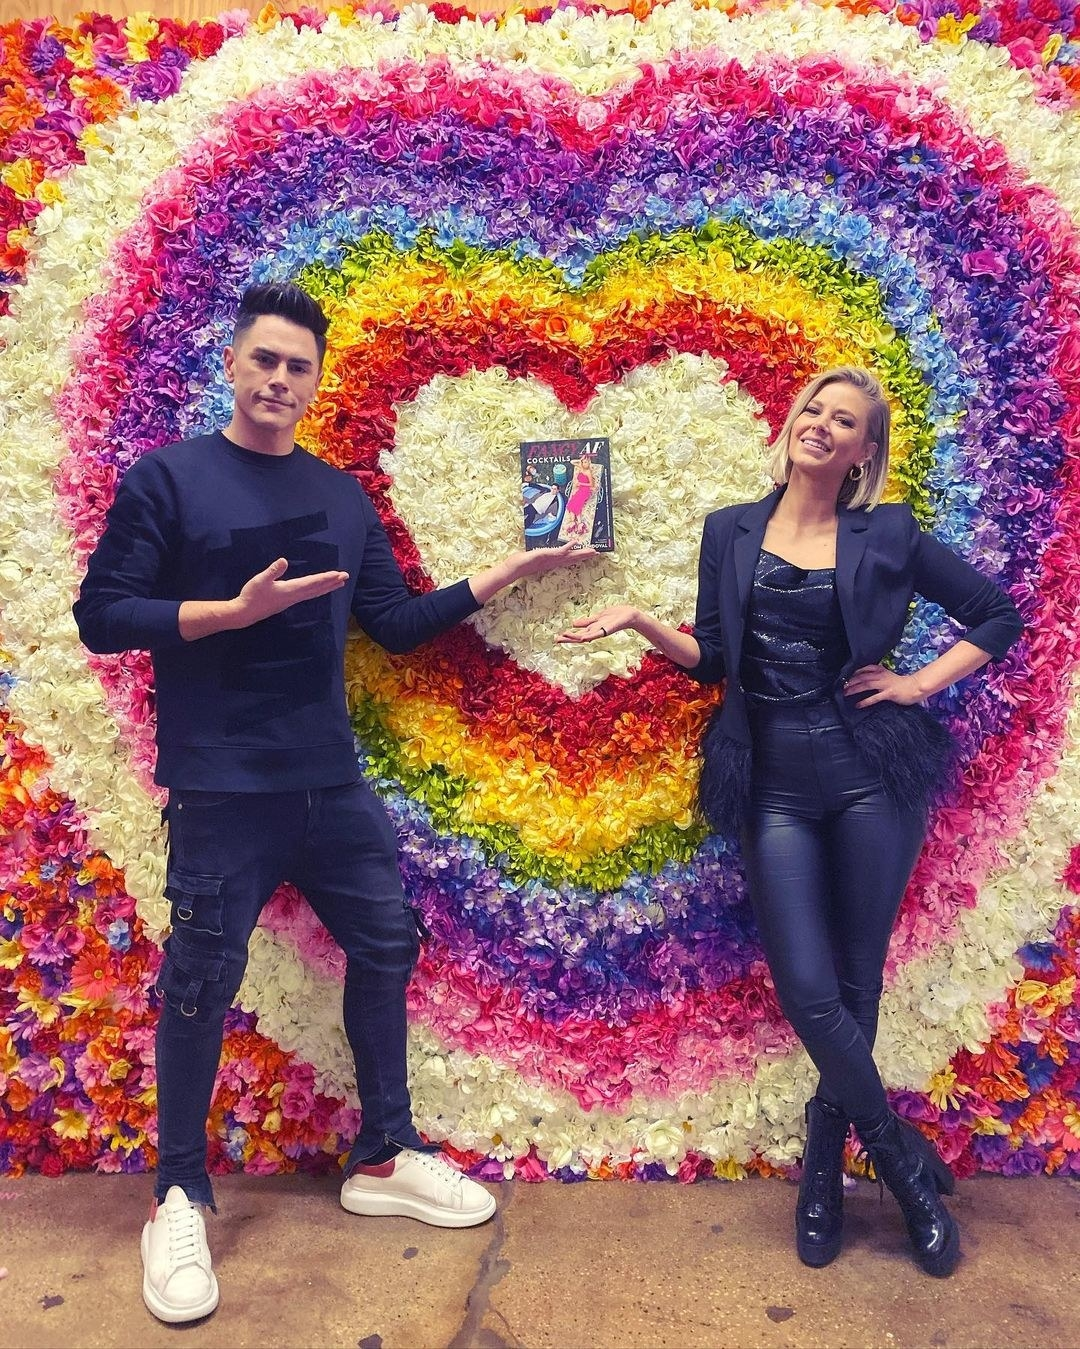 tom and ariana holding their book